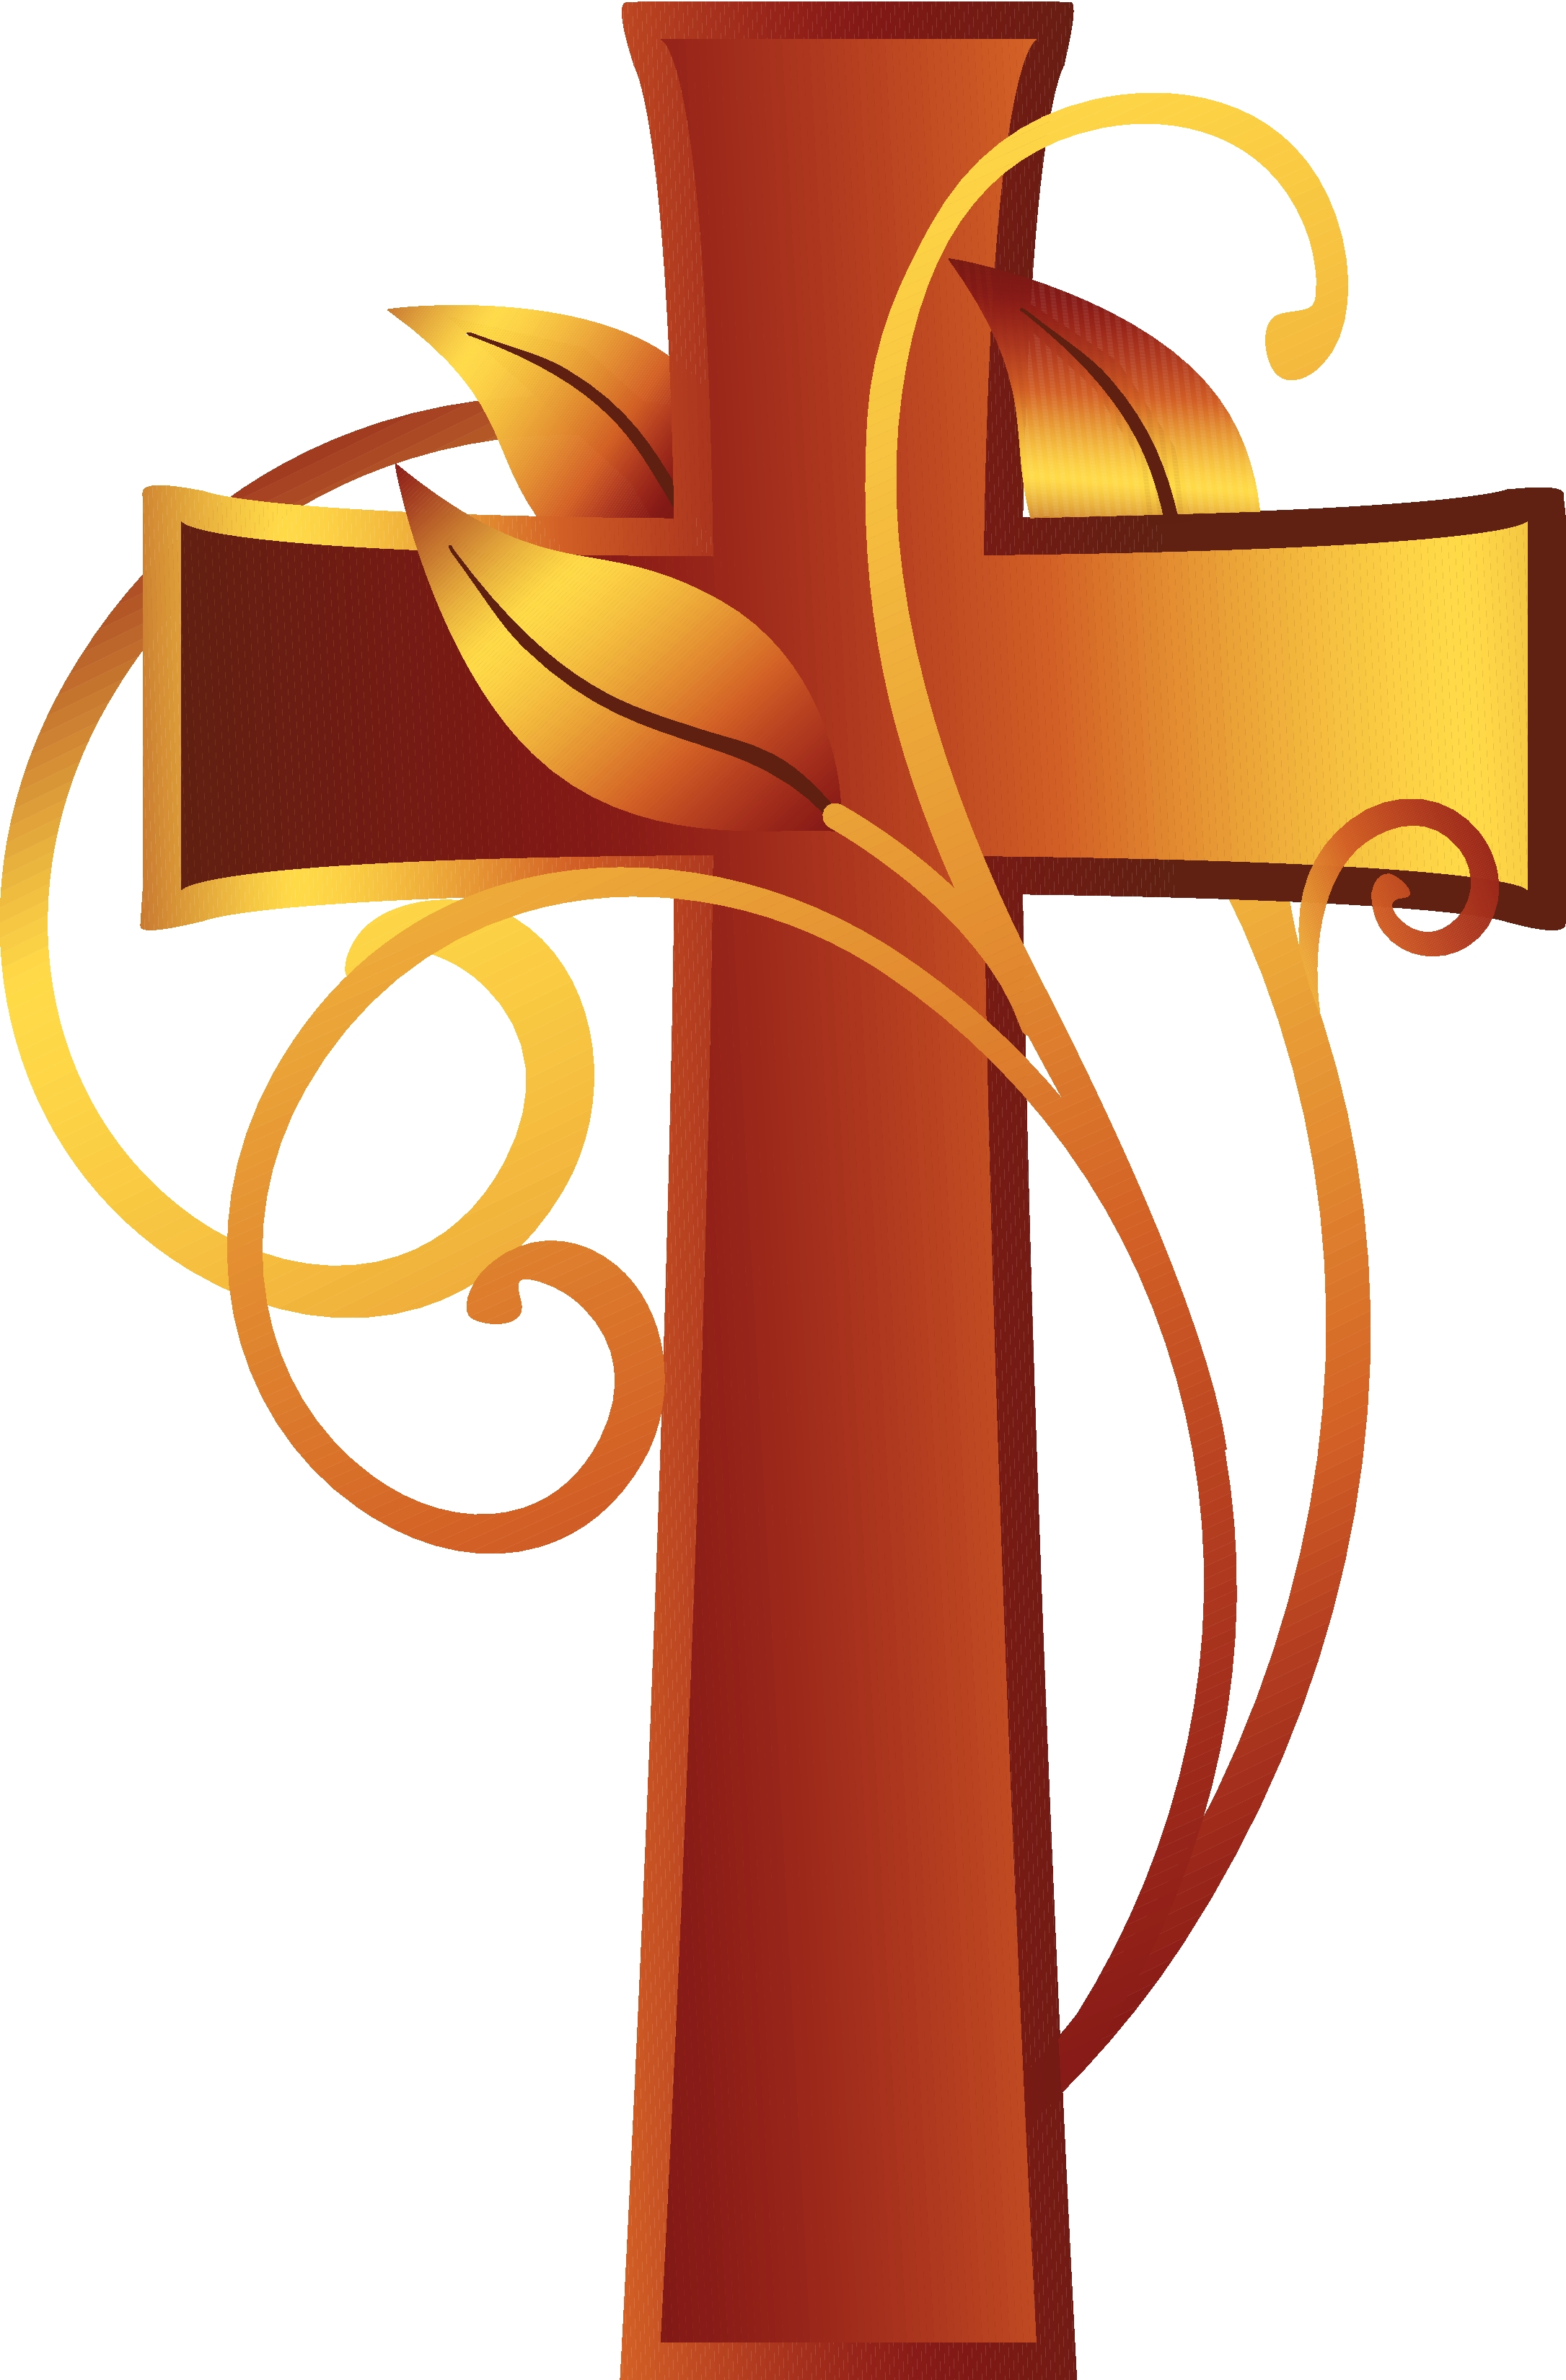 Free Religious Cliparts, Download Free Clip Art, Free Clip.